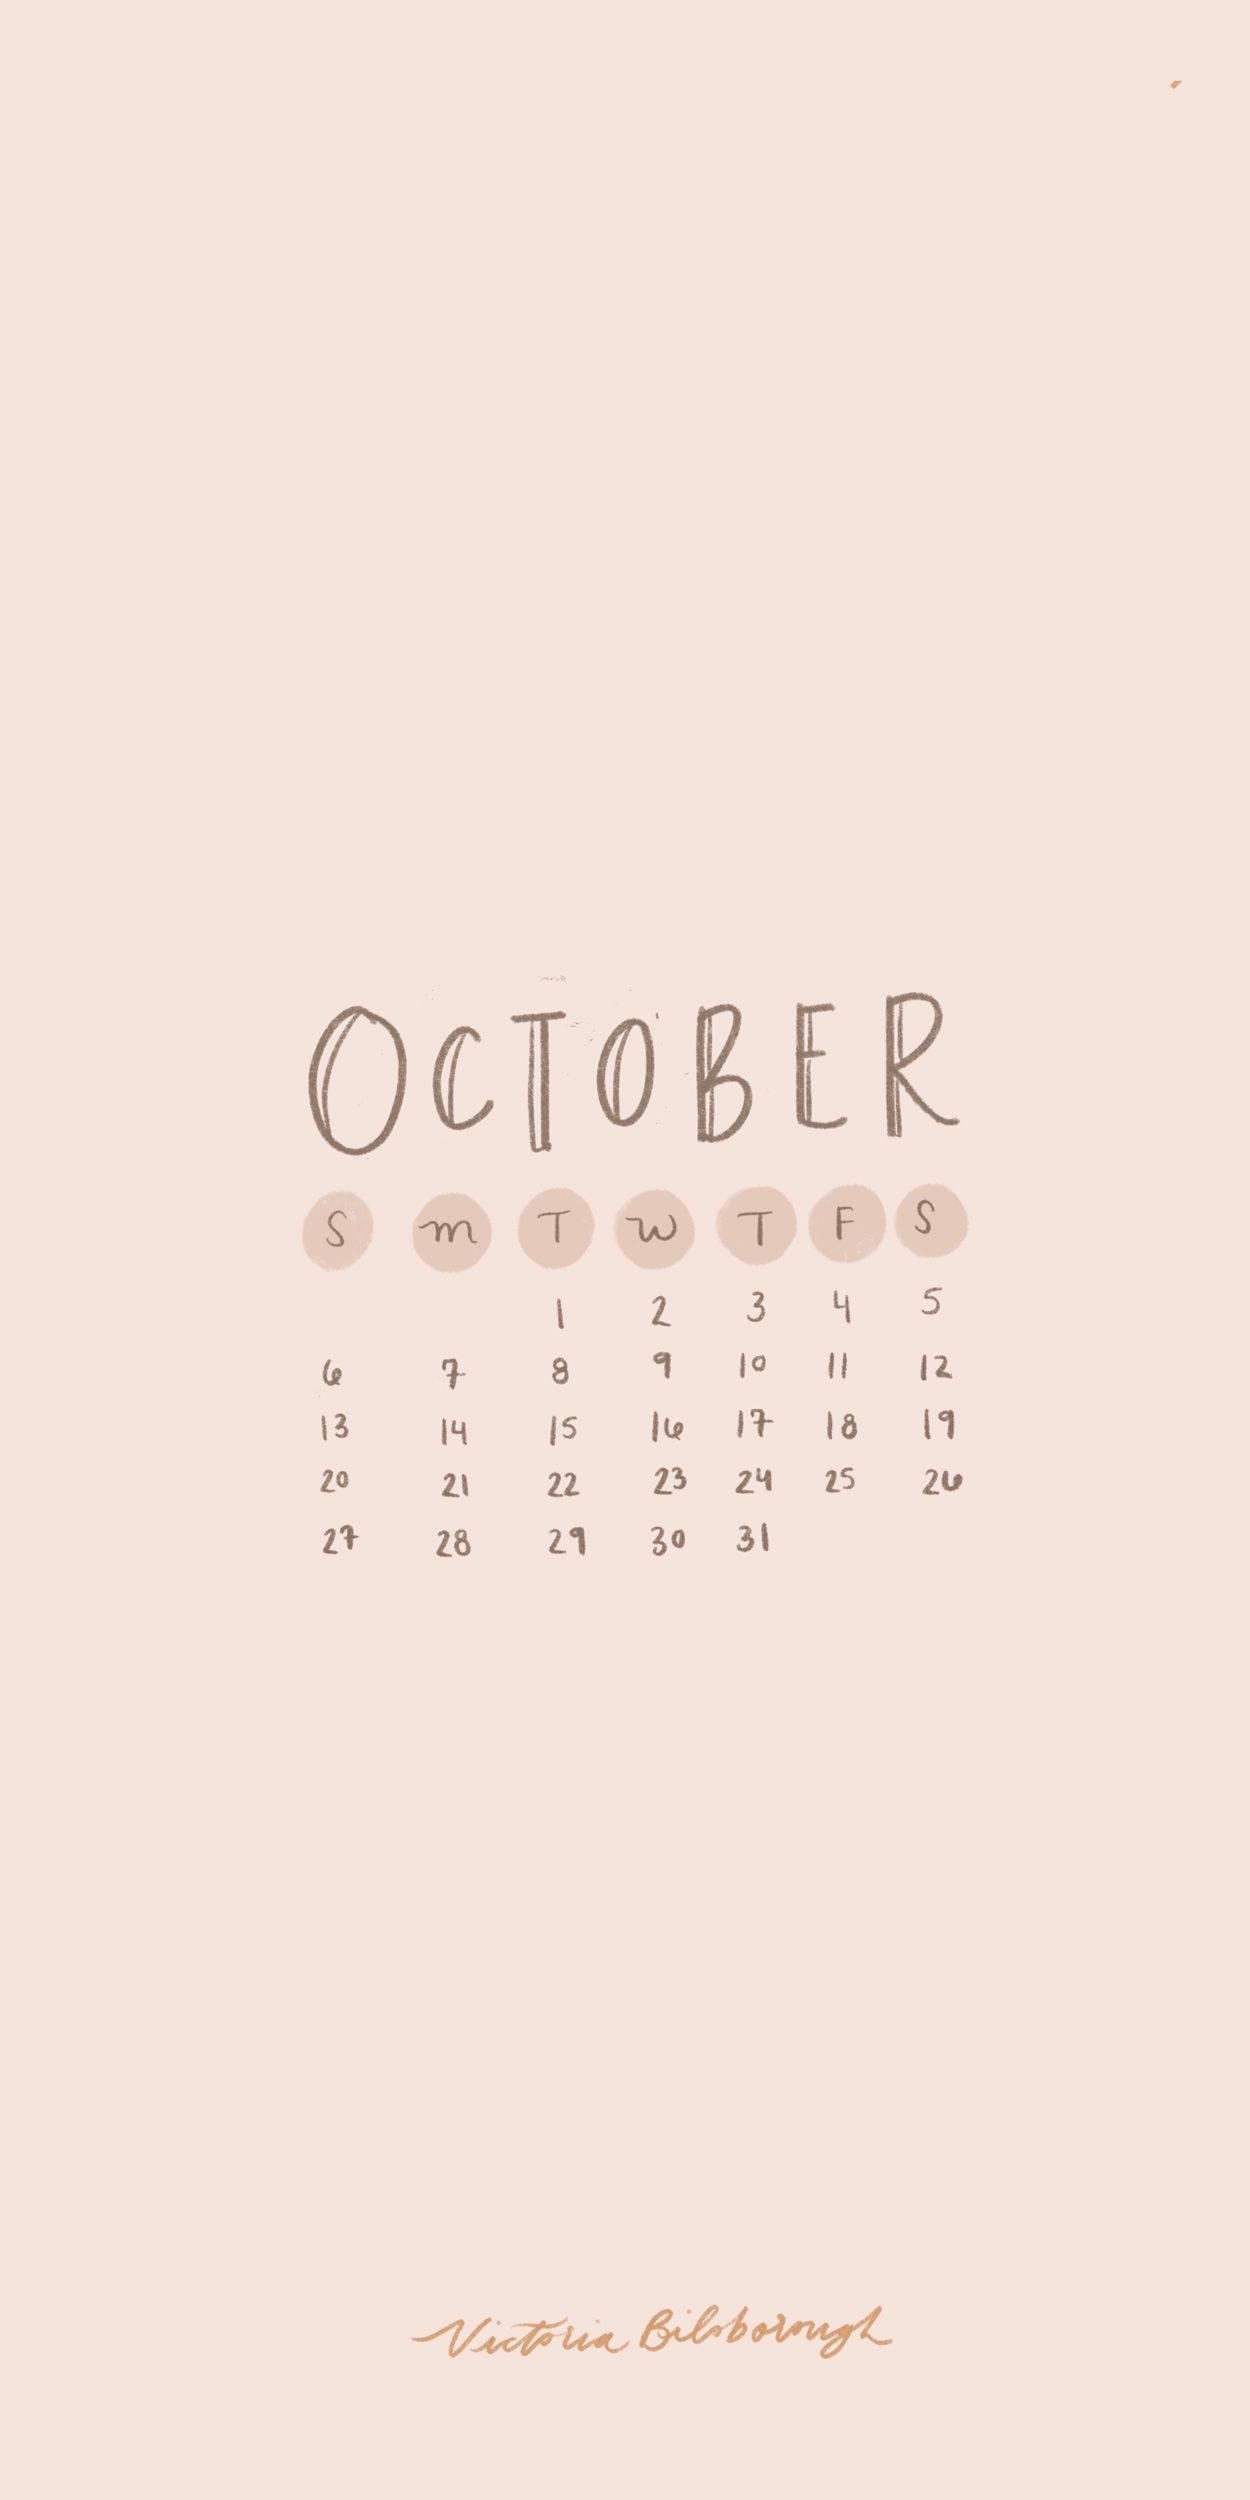 October 2019 | Free Wallpapers — Victoria Bilsborough #octoberwallpaper October 2019 | Free Wallpapers — Victoria Bilsborough #octoberwallpaper October 2019 | Free Wallpapers — Victoria Bilsborough #octoberwallpaper October 2019 | Free Wallpapers — Victoria Bilsborough #octoberwallpaper